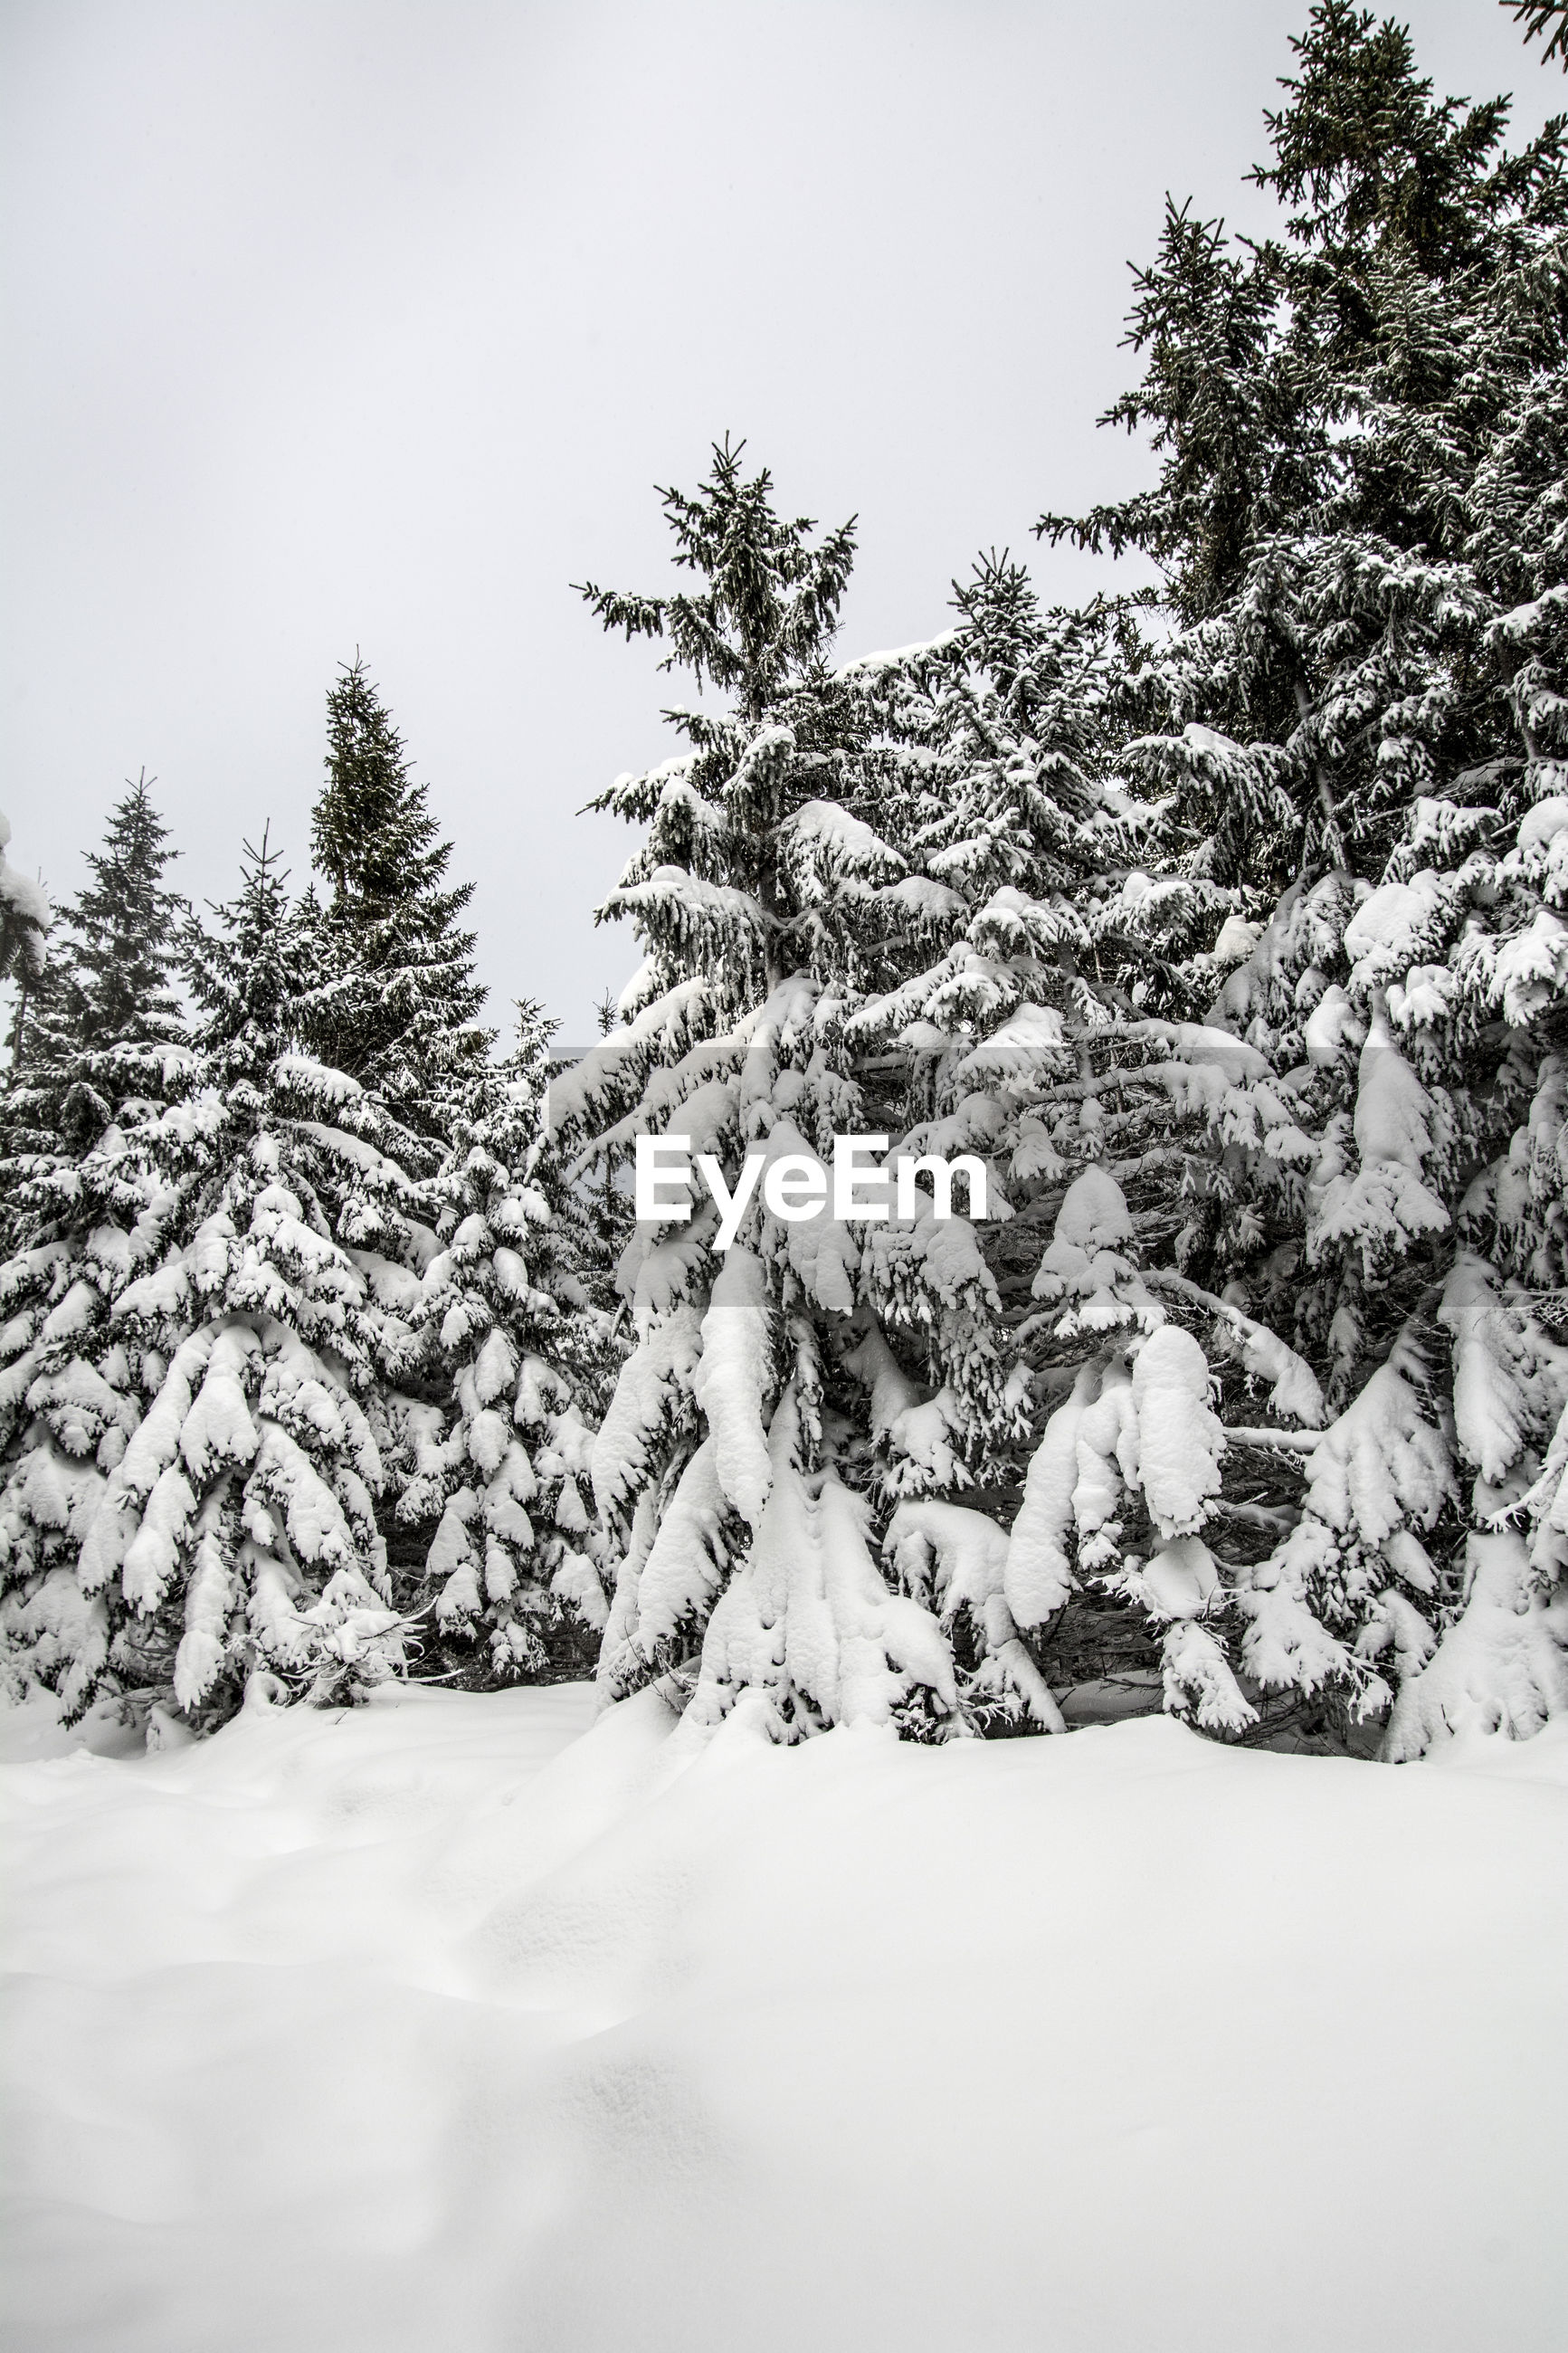 SNOW COVERED TREES AGAINST CLEAR SKY